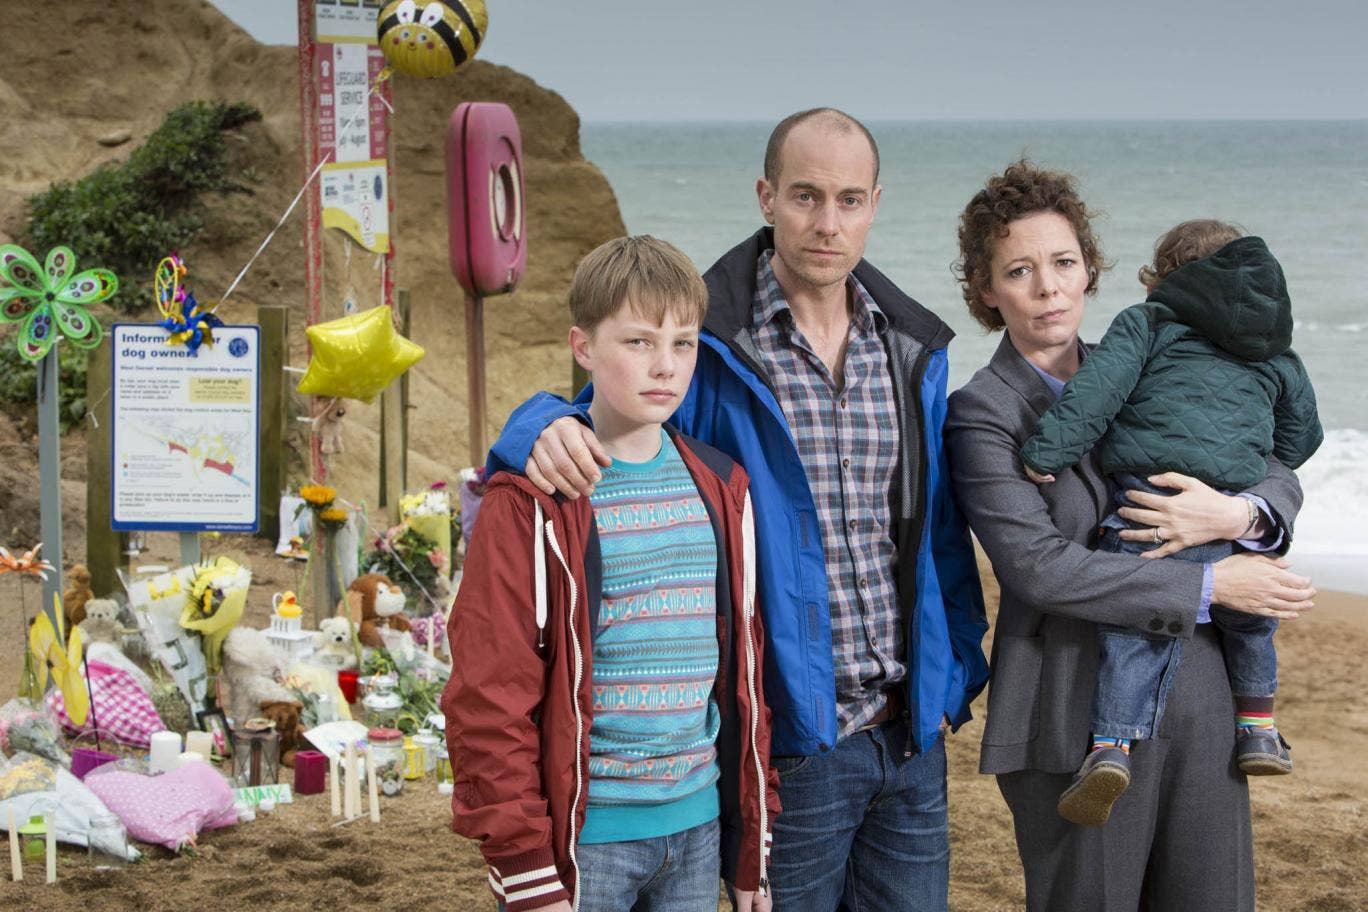 The Miller family from ITV drama Broadchurch